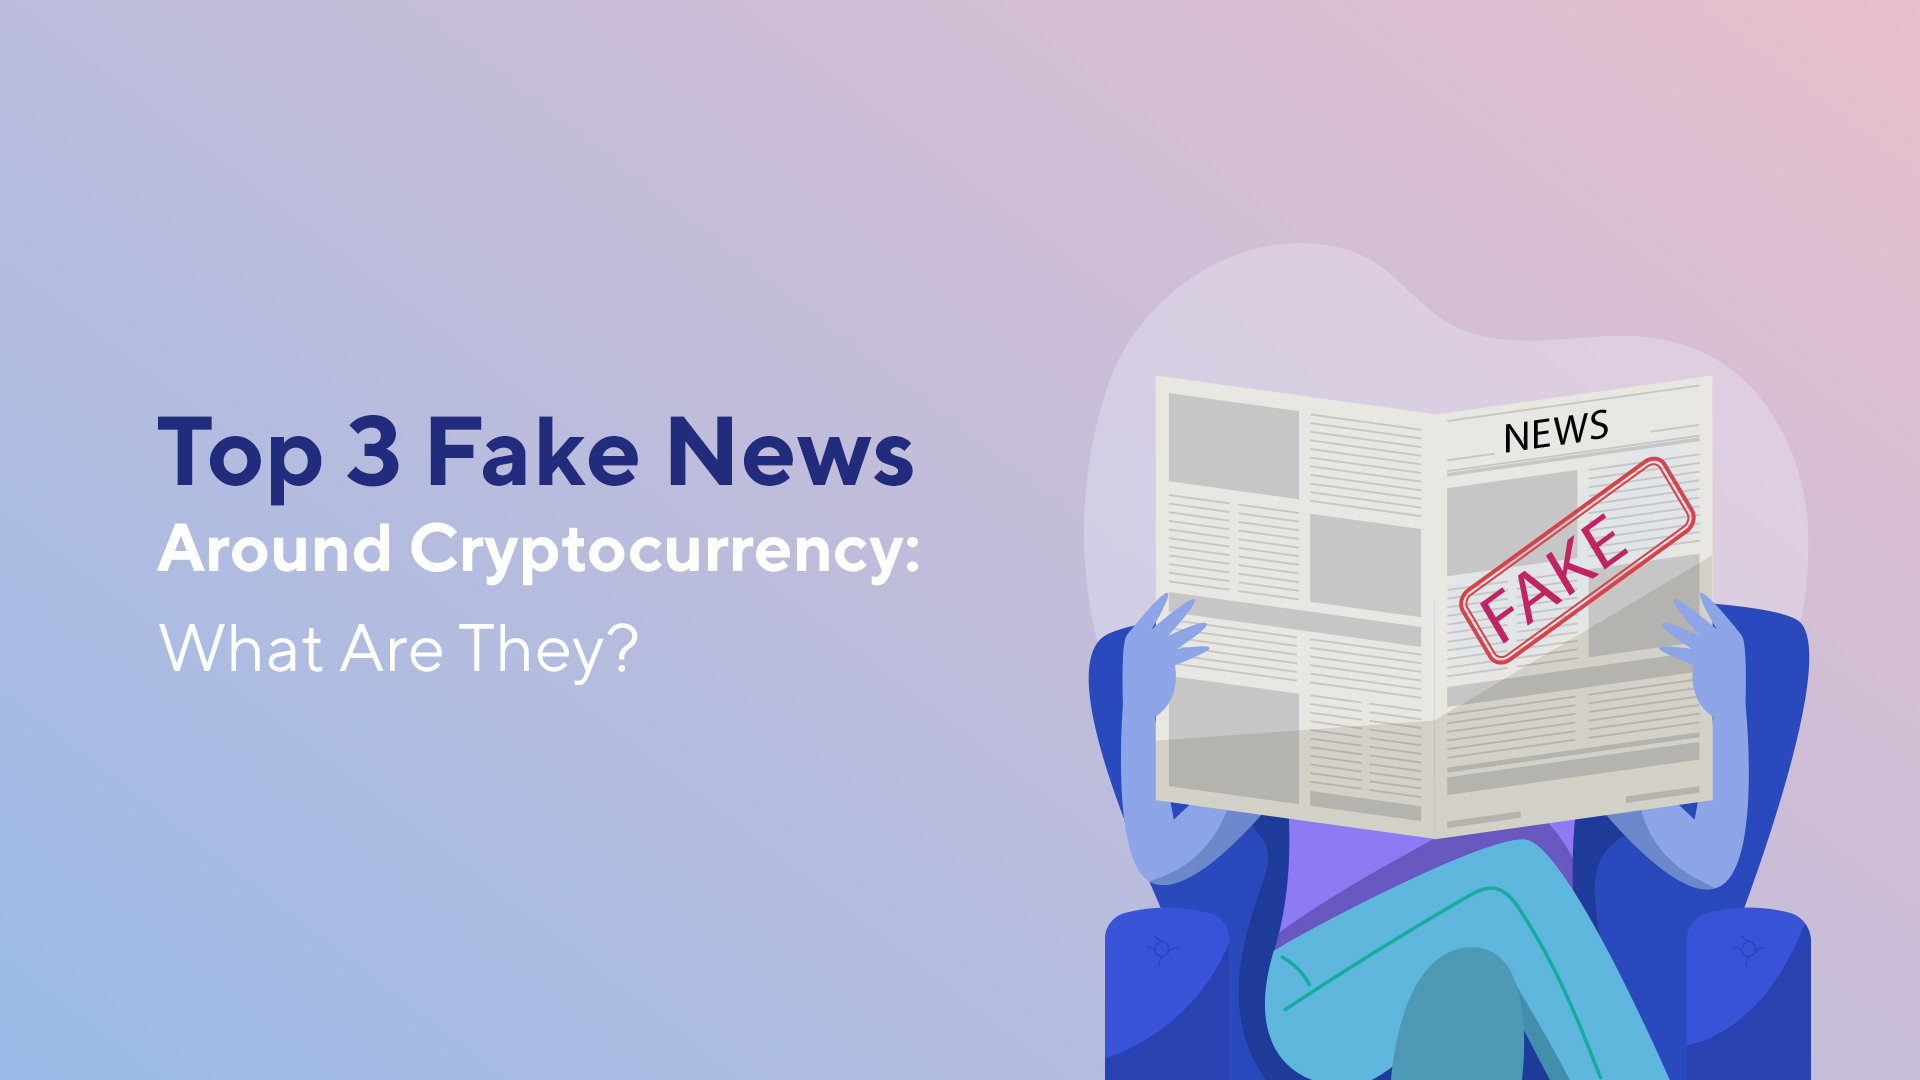 Top 3 Fake News Around Cryptocurrency